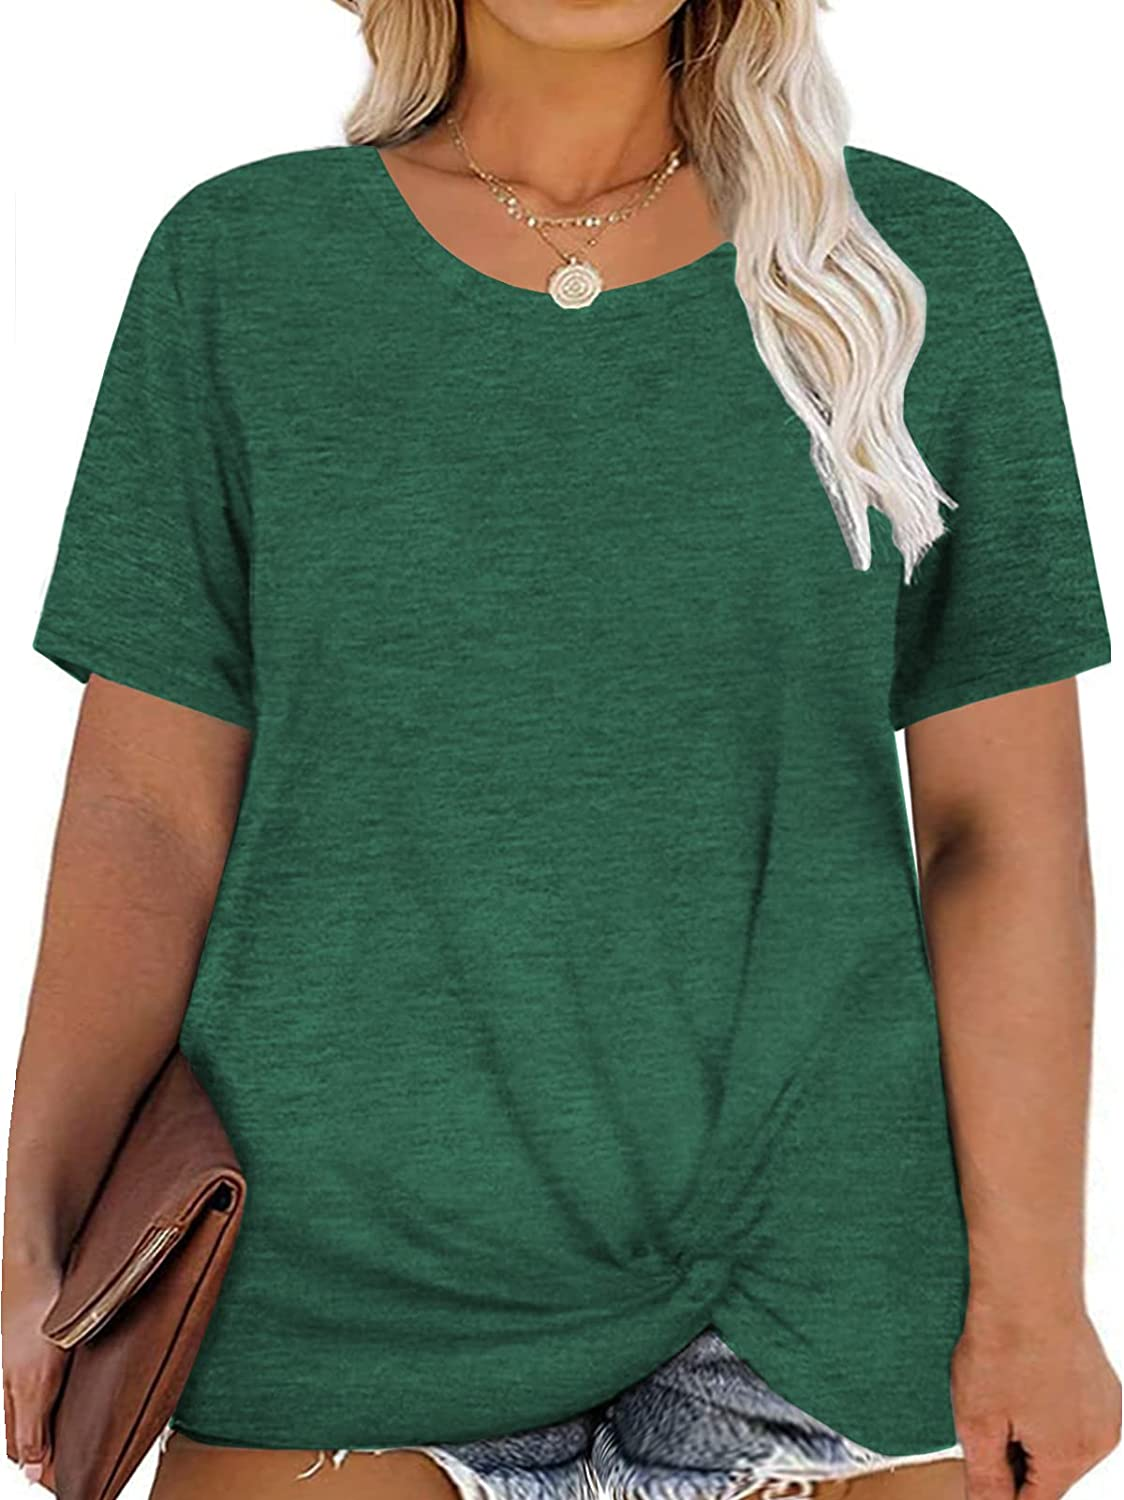 DOLNINE Women's Plus Size Knotted Tops Short Sleeve Tees Casual Tunics Blouses